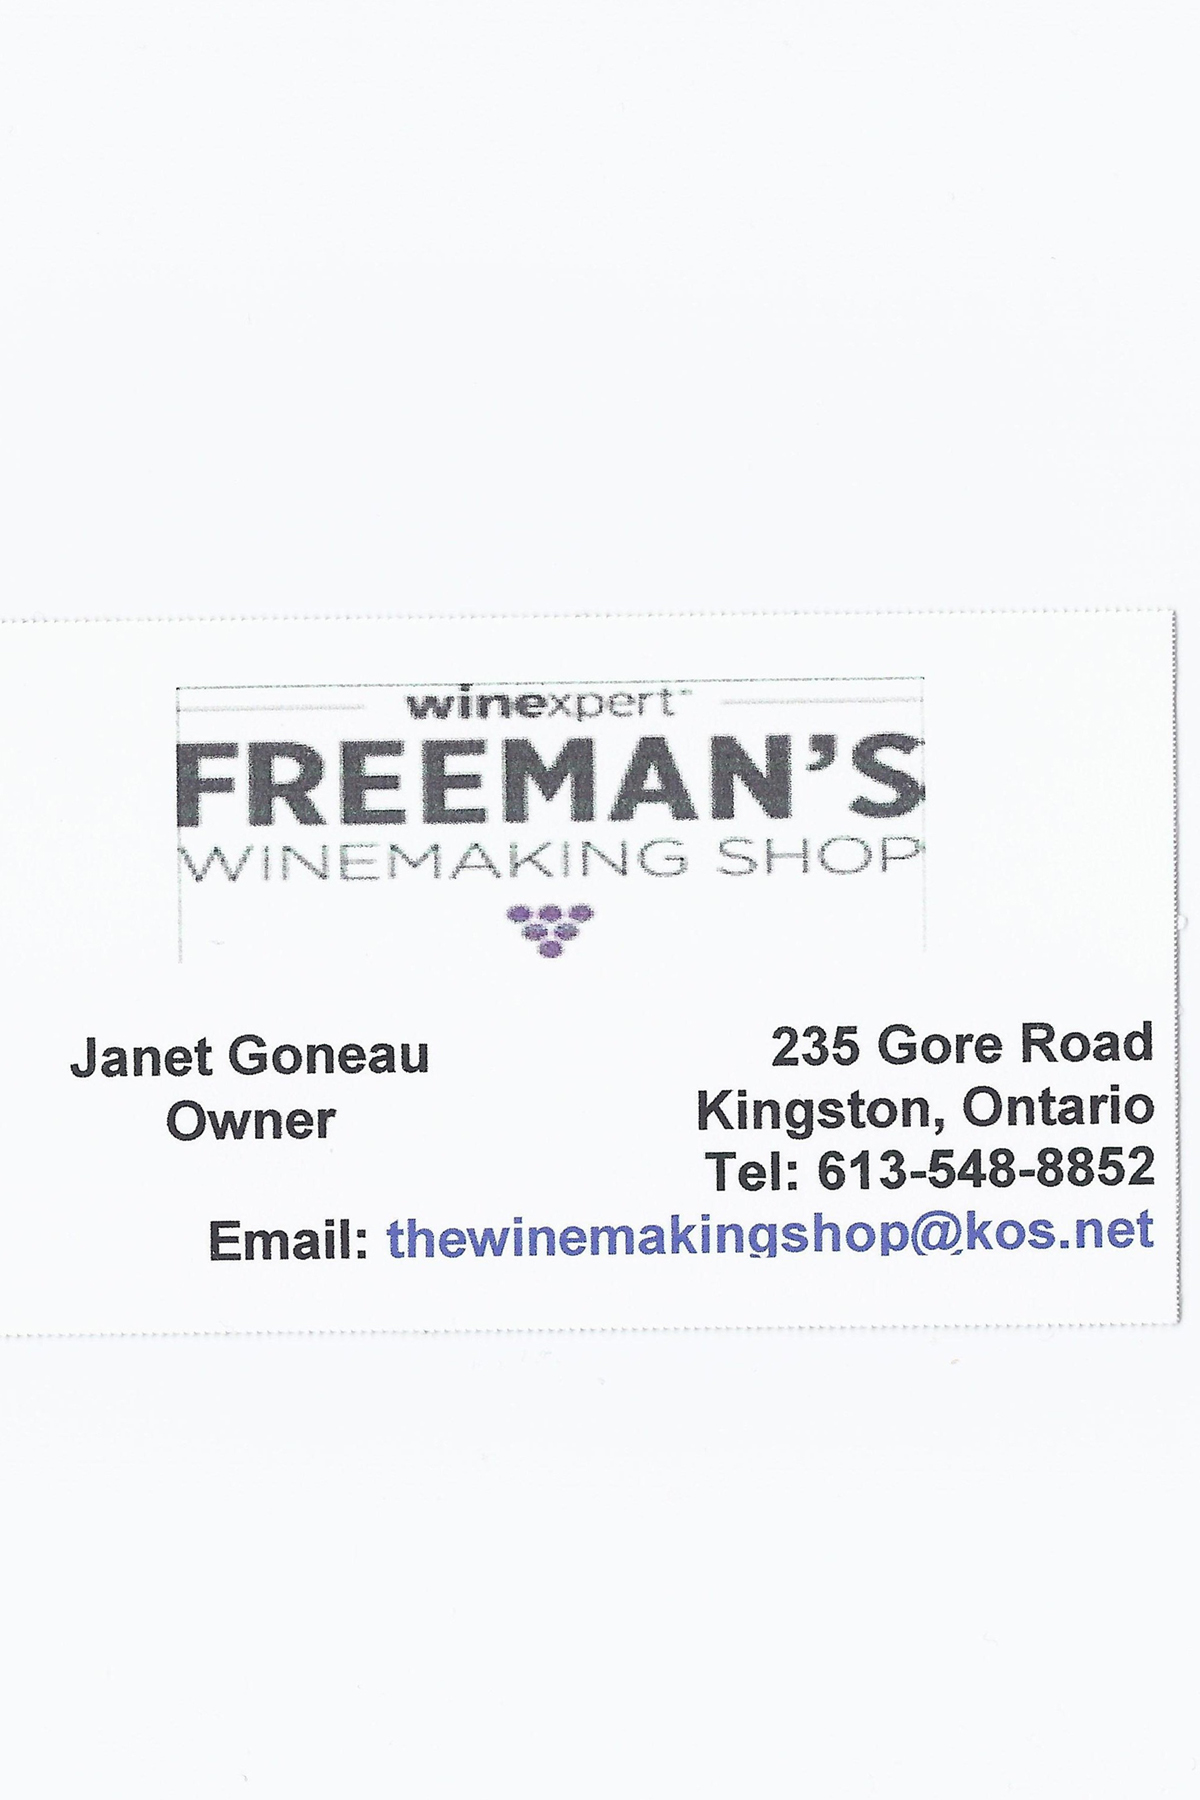 FREEMAN'S WINE MAKING SHOP - SUPPORT OUR SPONSORS!